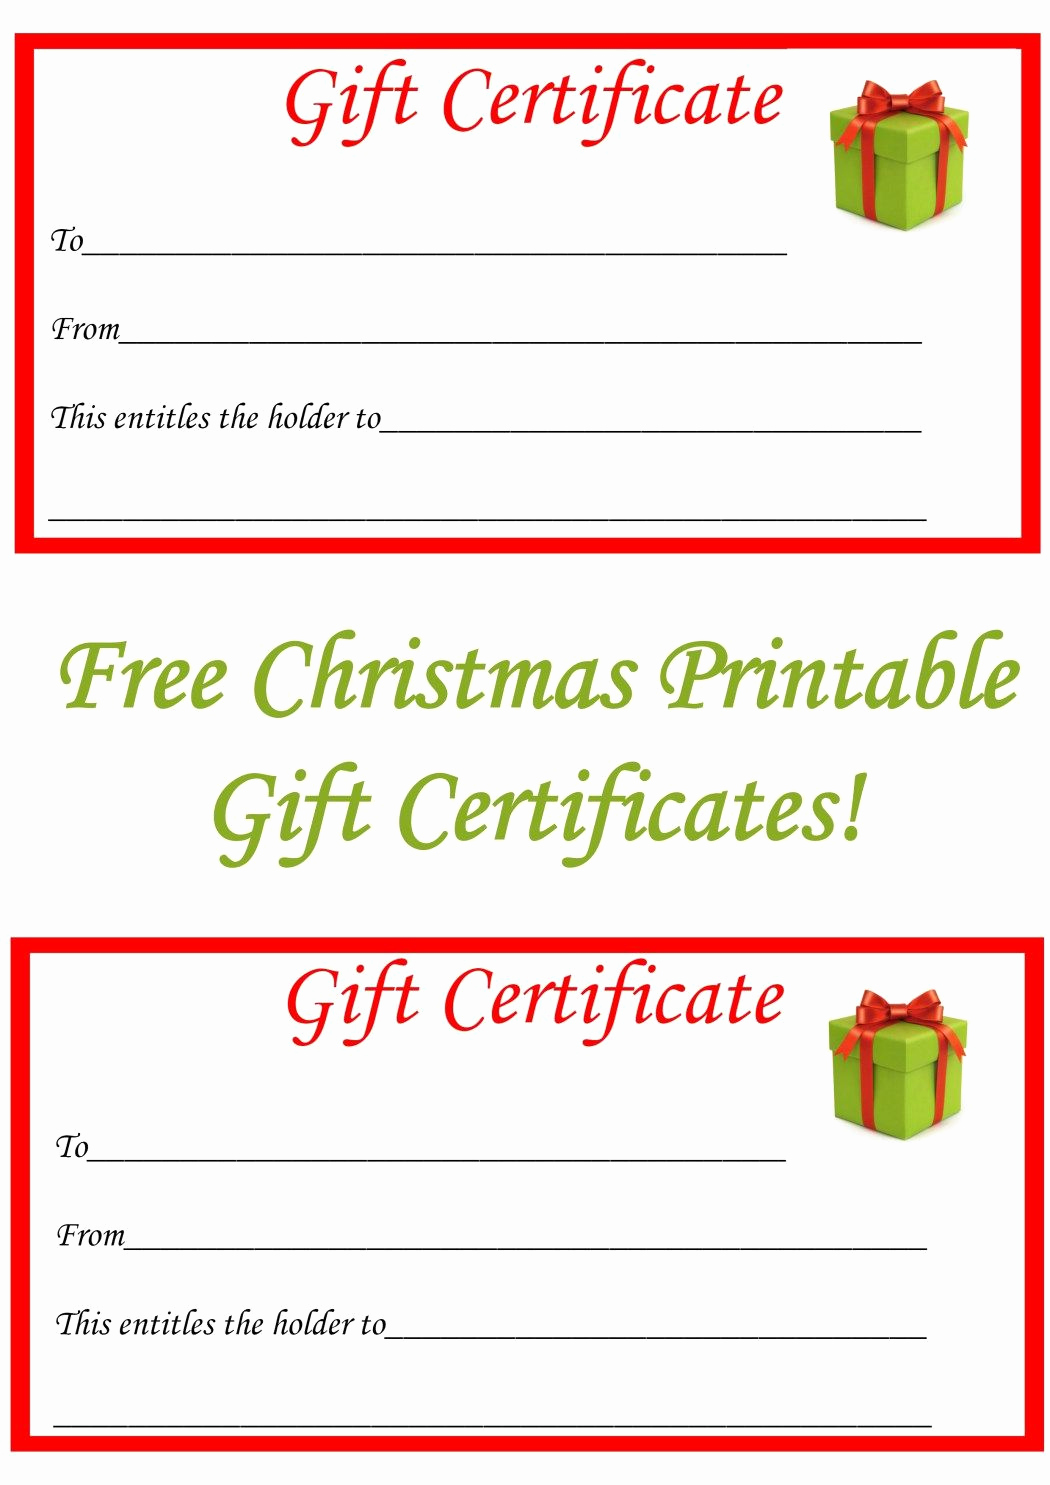 Free Downloadable Gift Certificate Template Awesome the 25 Best Printable T Certificates Ideas On